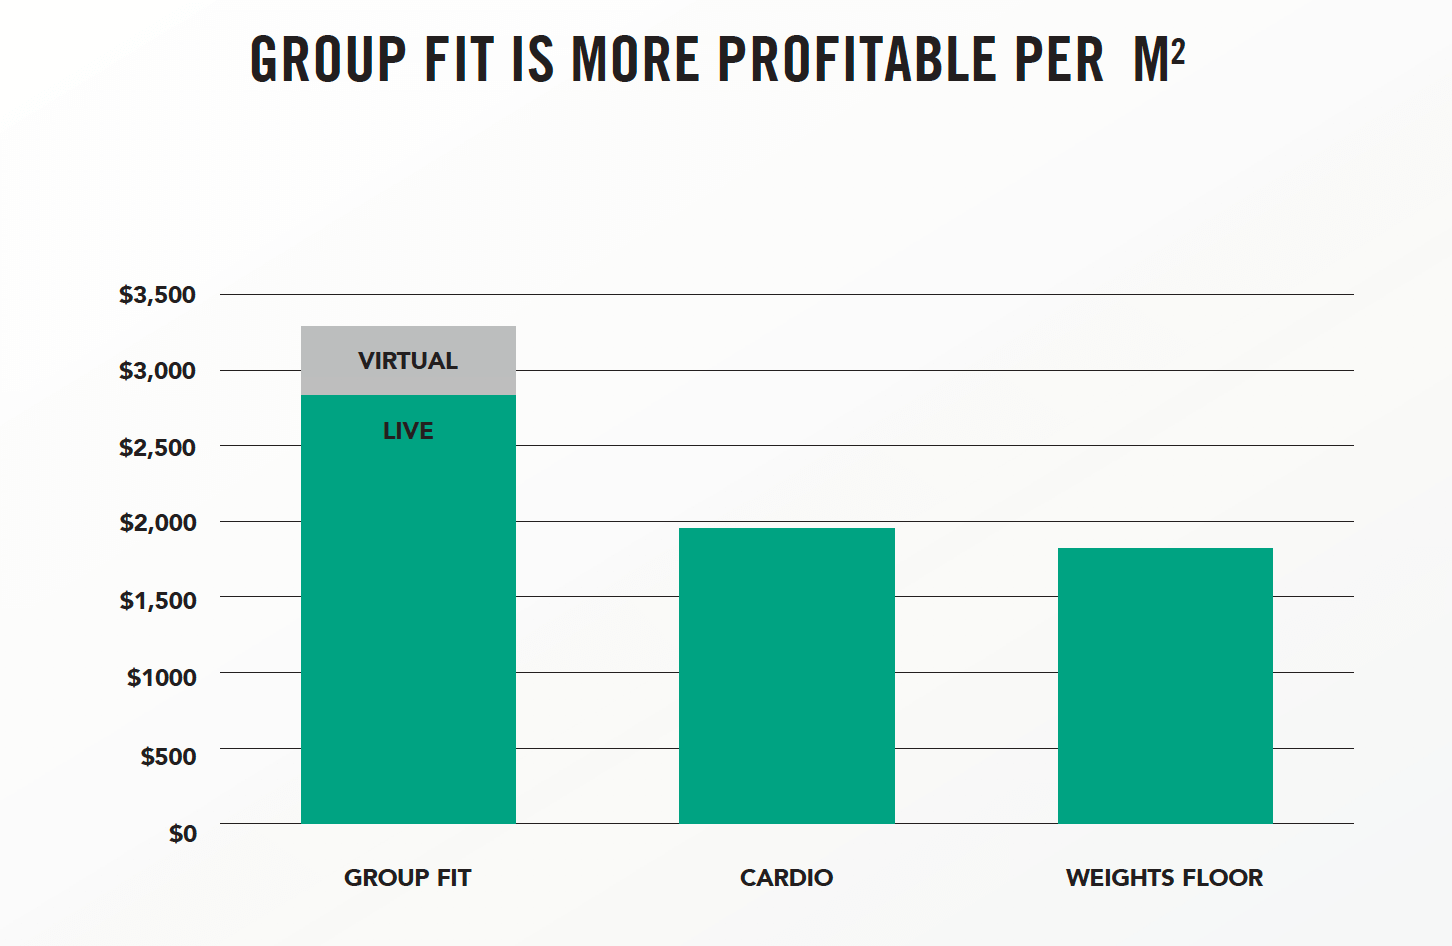 Group Fit is more profitable per m2